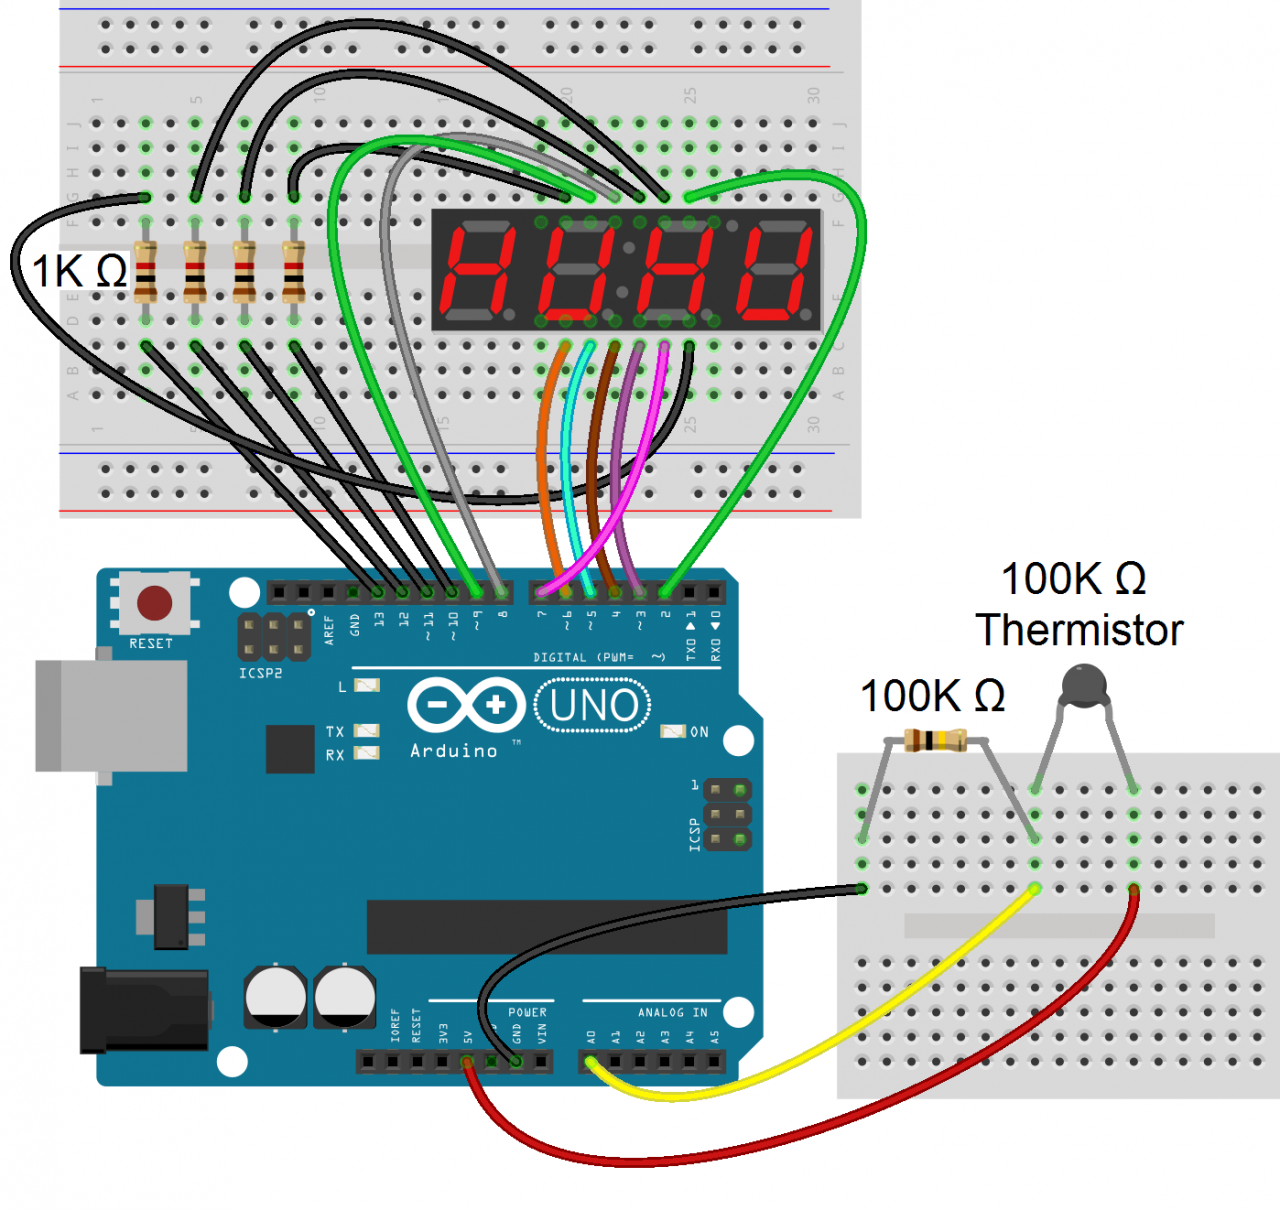 Arduino monitor serial